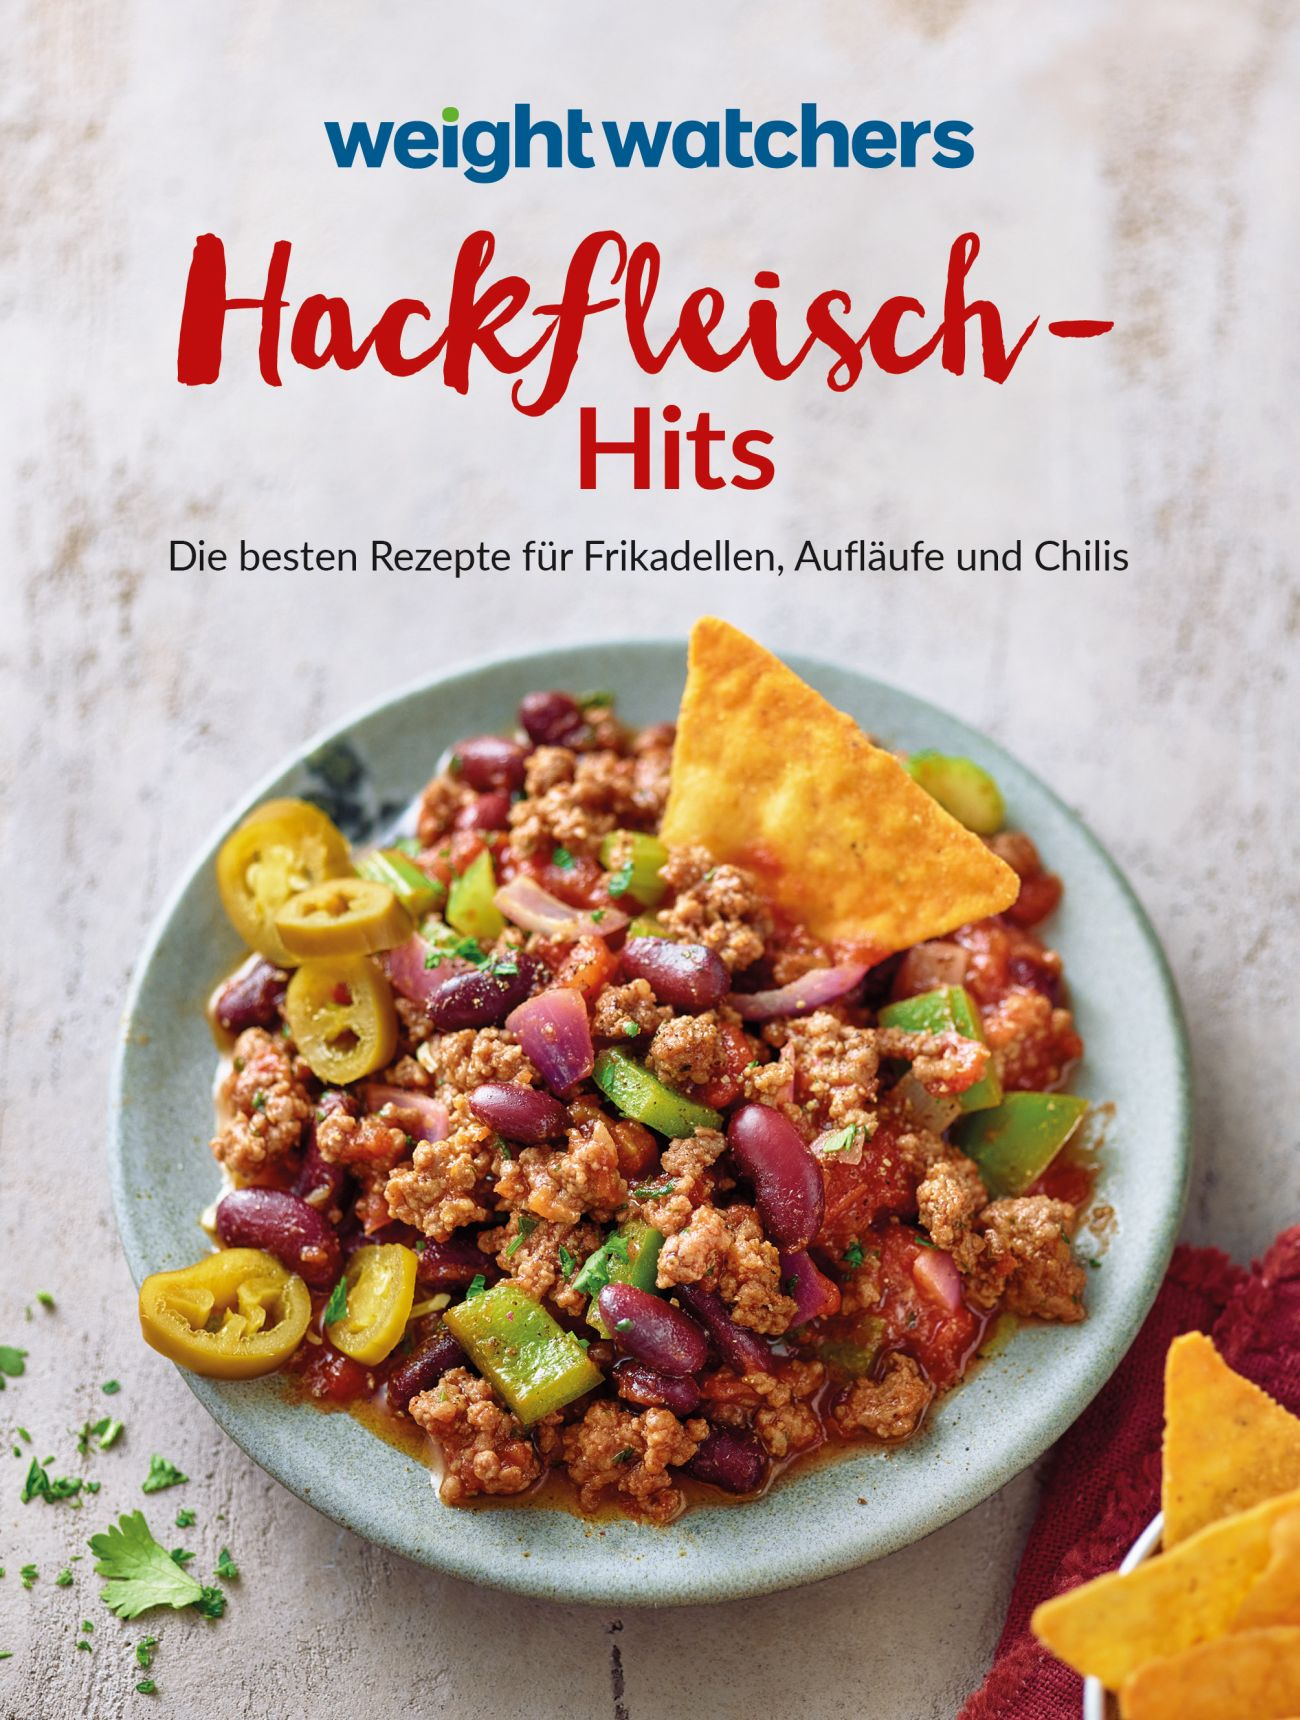 Weight Watchers Schnelle Gerichte Weight Watchers Hackfleisch Hits Von Weight Watchers Die Besten Rez